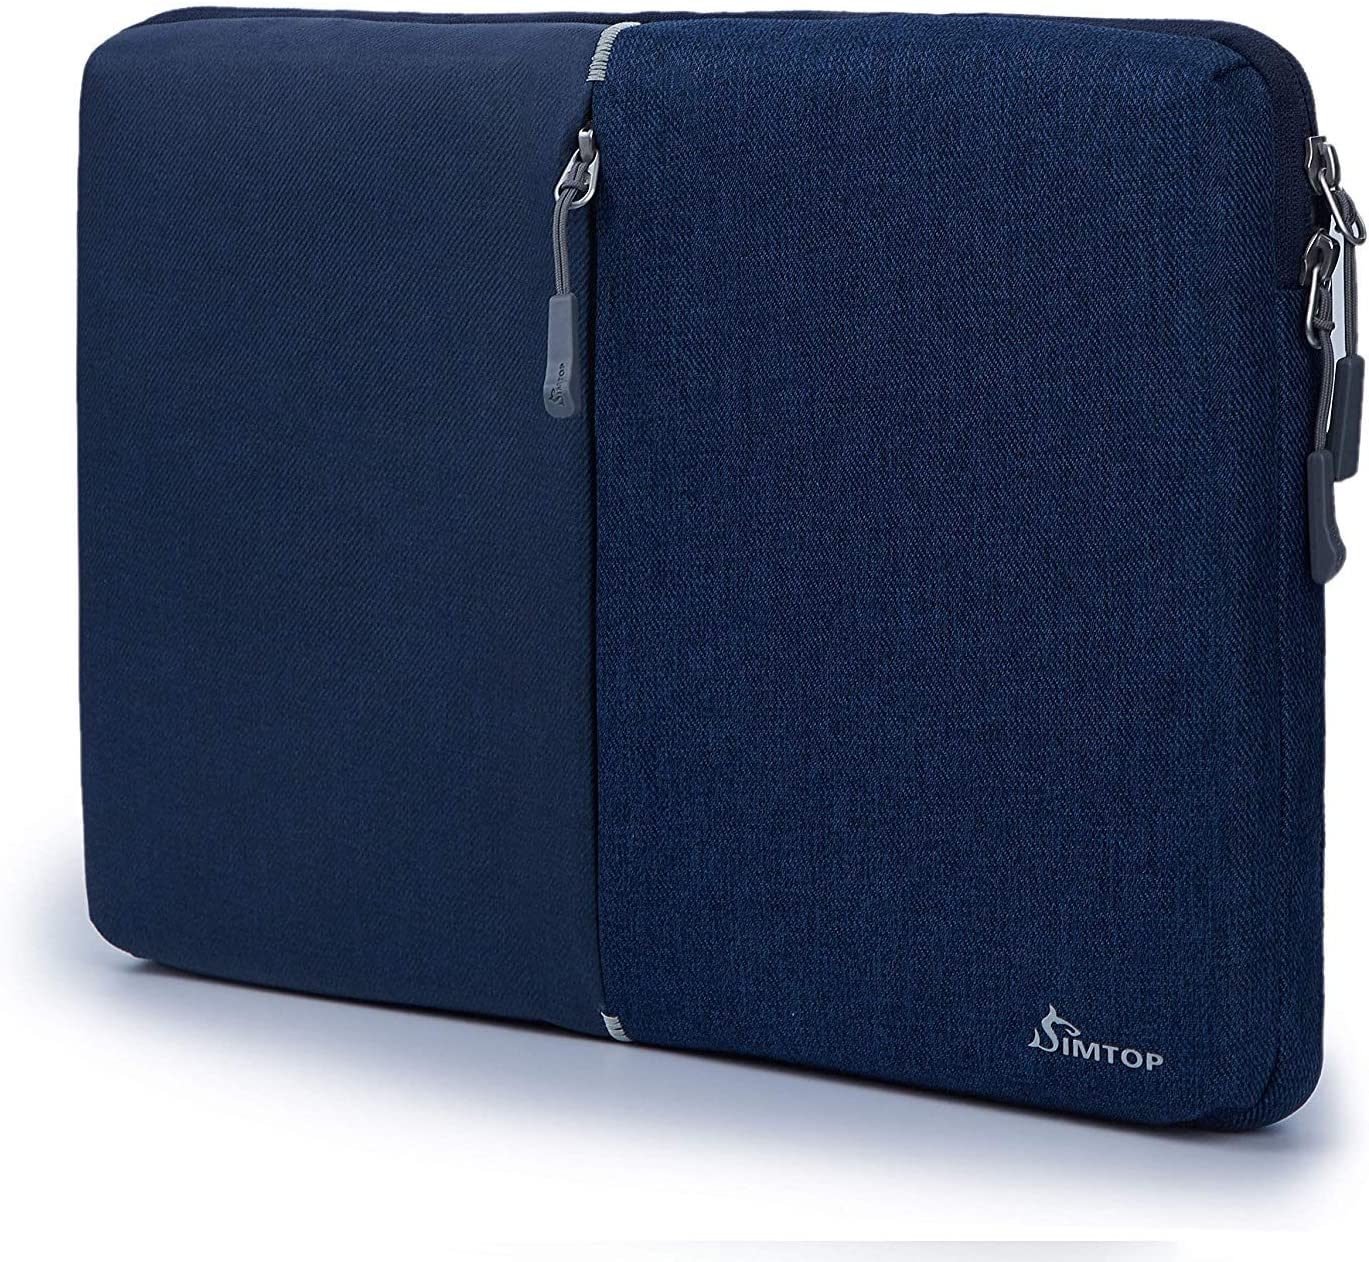 SIMTOP 360° Protection 13.3 Inch Laptop Sleeve, Water Proof Laptop Case Bag Perfect with MacBook Air 13.3 Inch A1369 A1466 and MacBook Pro 13.3 Inch A1502 A1425 12.9 inch ipad pro.YKK Zipper Bag